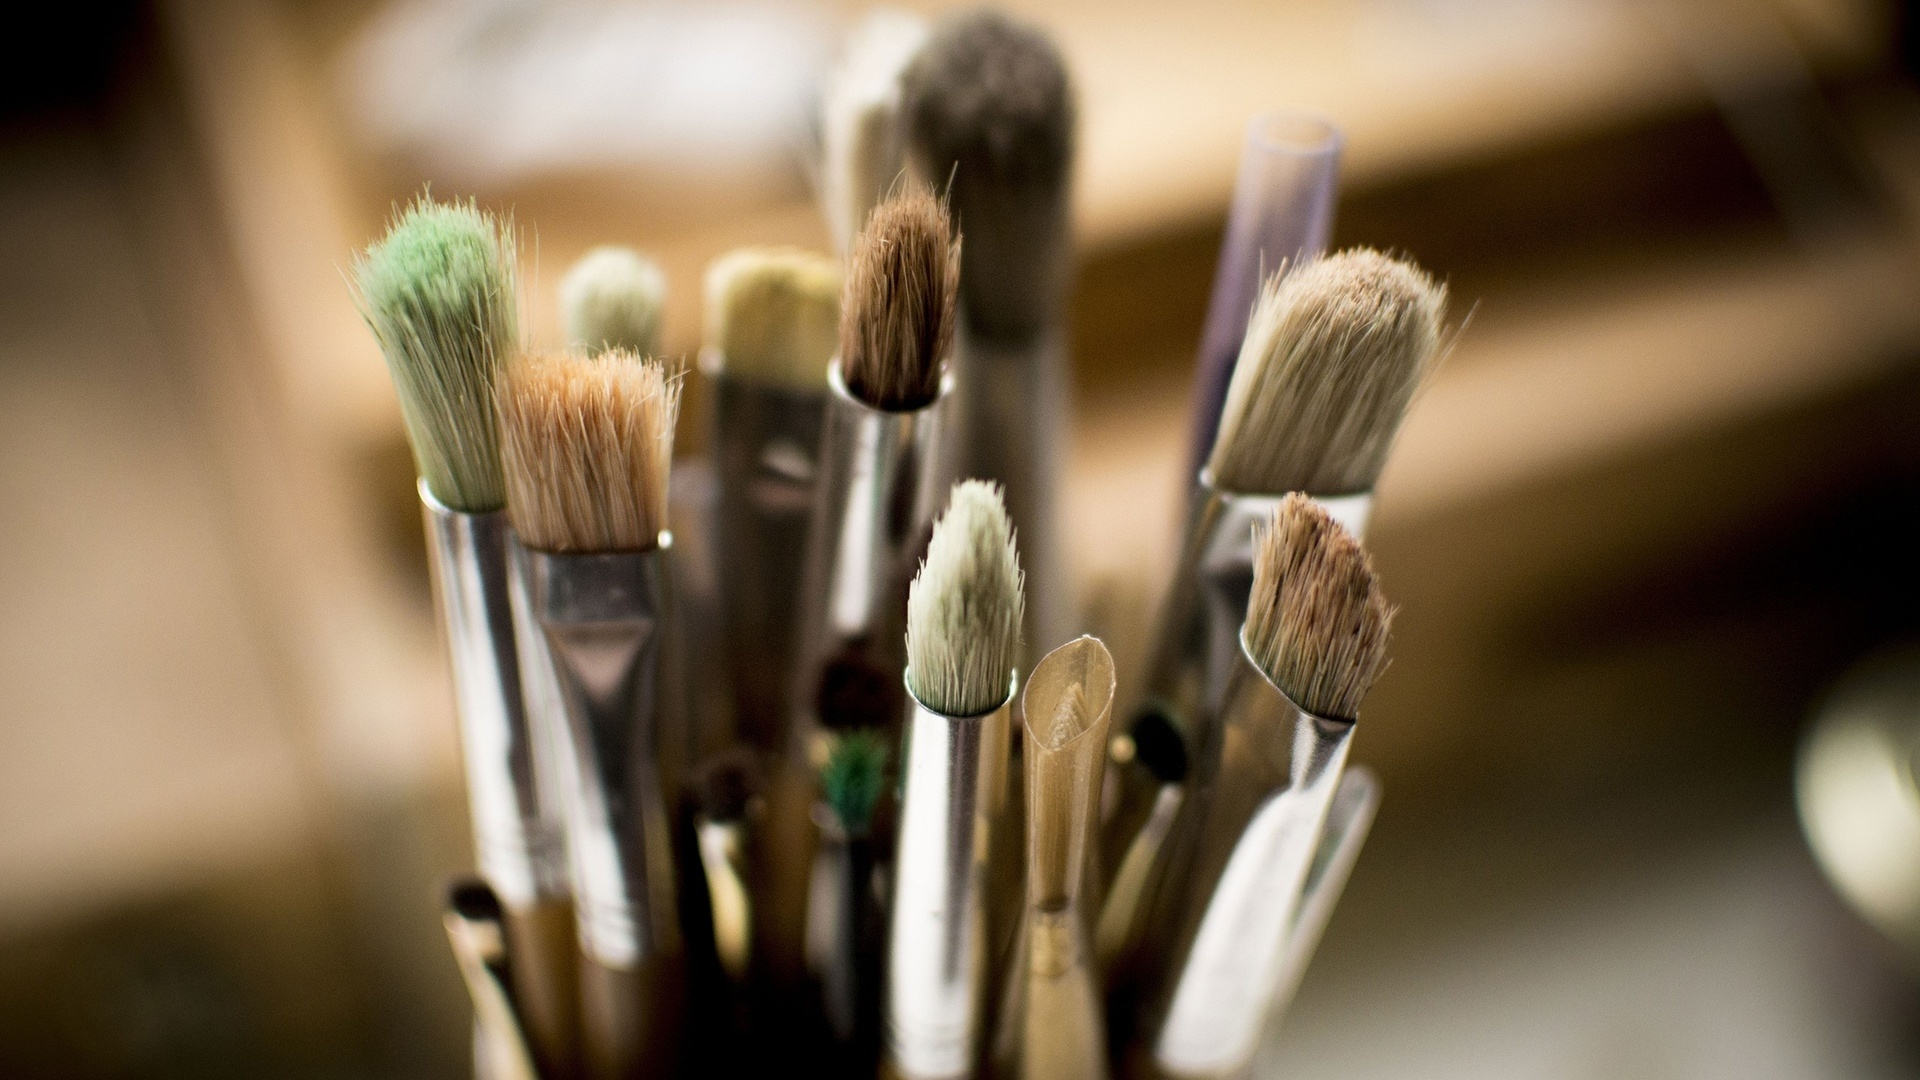 Brushes And Paint HD Wallpaper